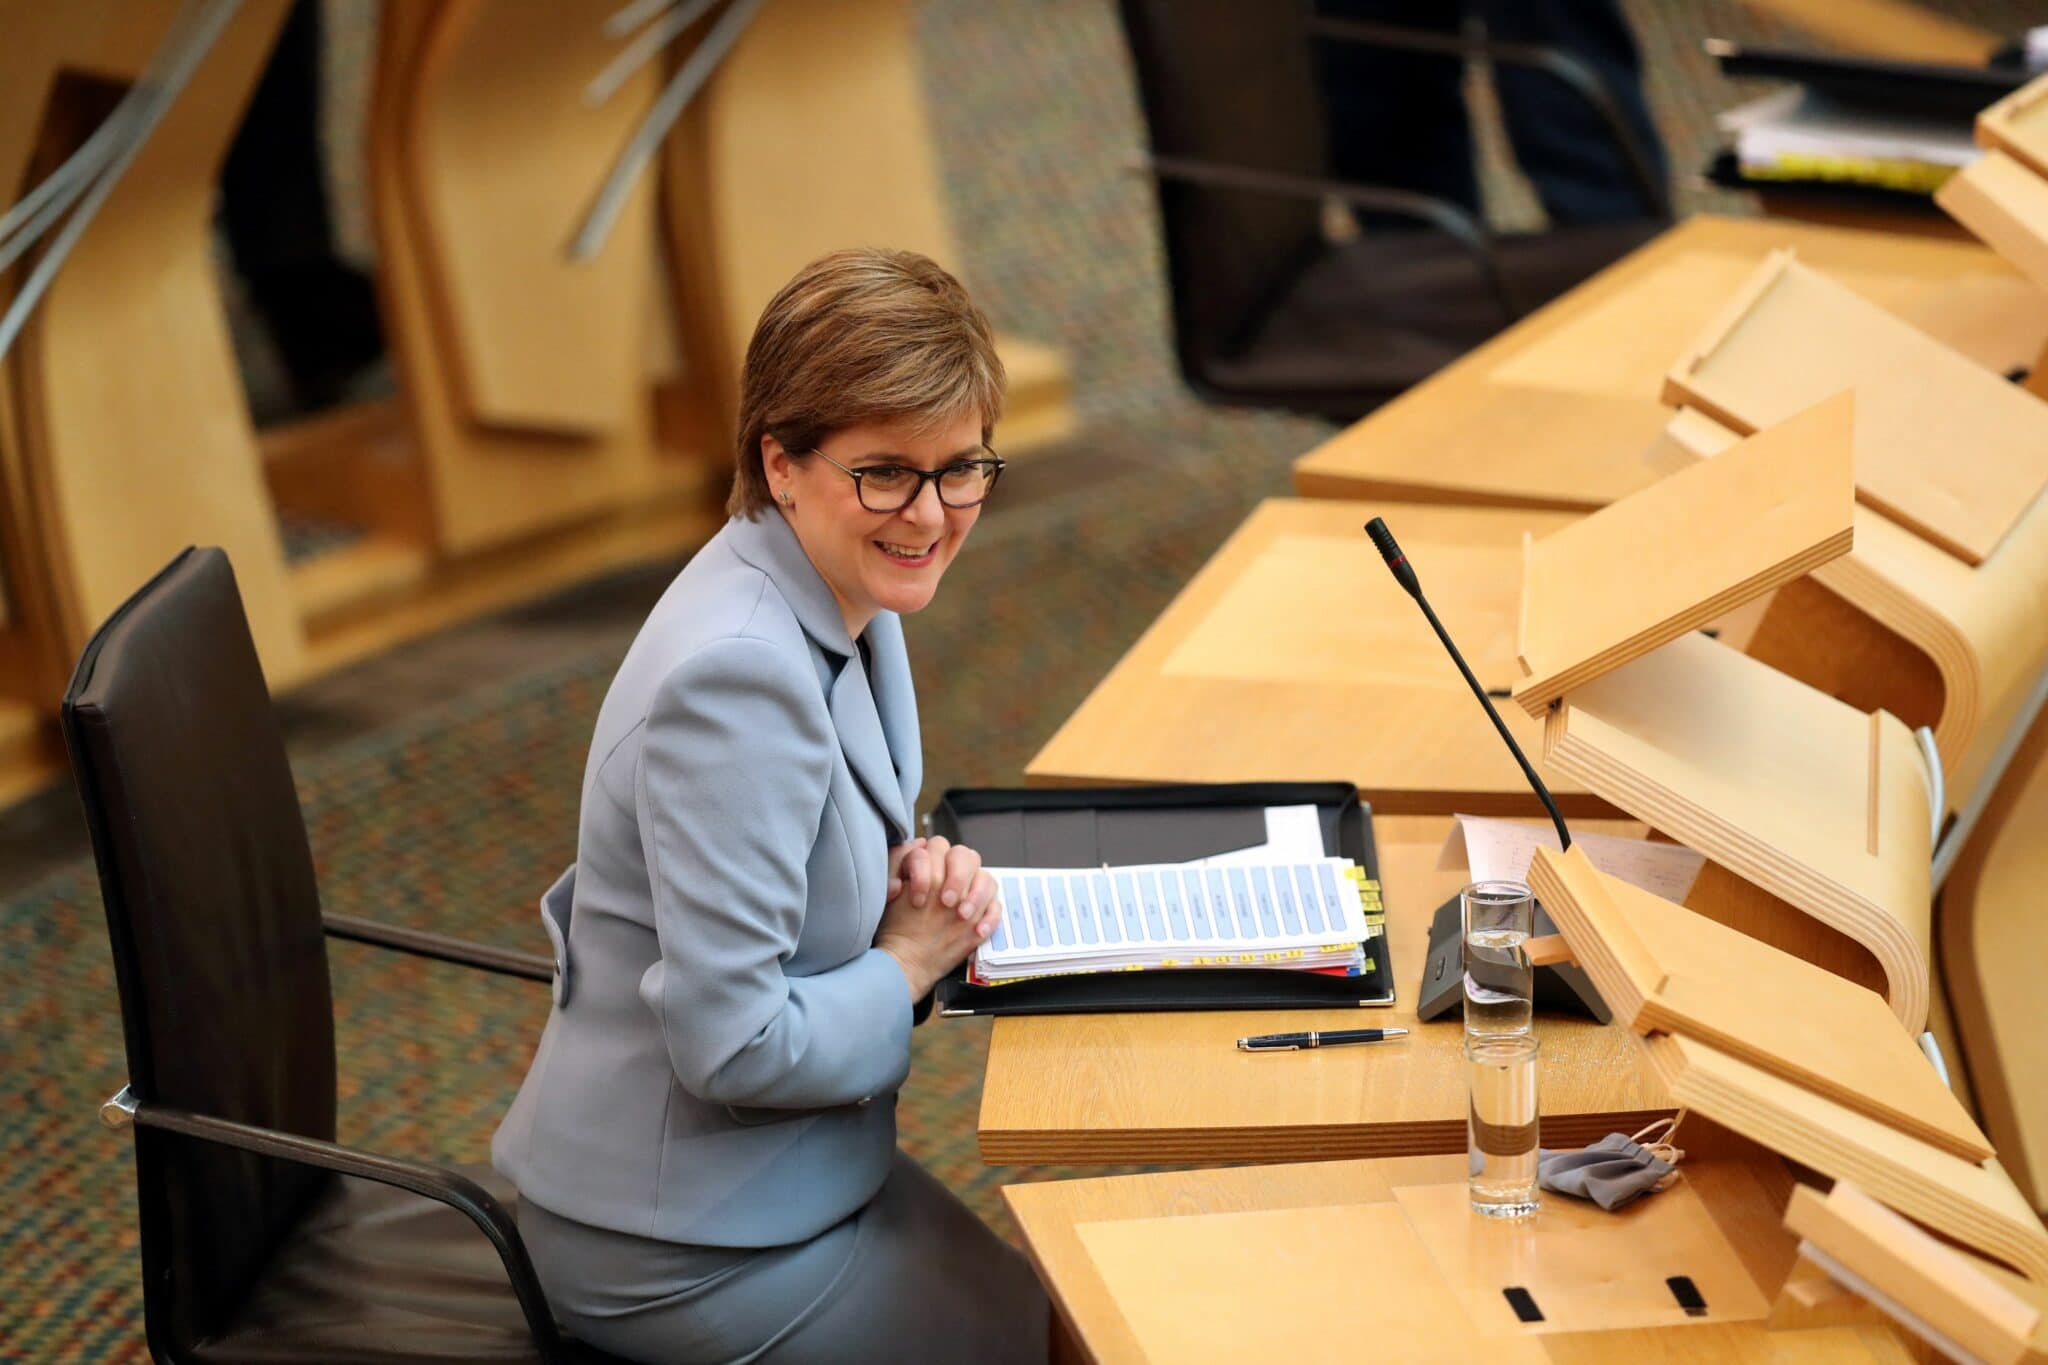 Nicola Sturgeon vows to cut 'trauma-inducing' waiting times for trans healthcare